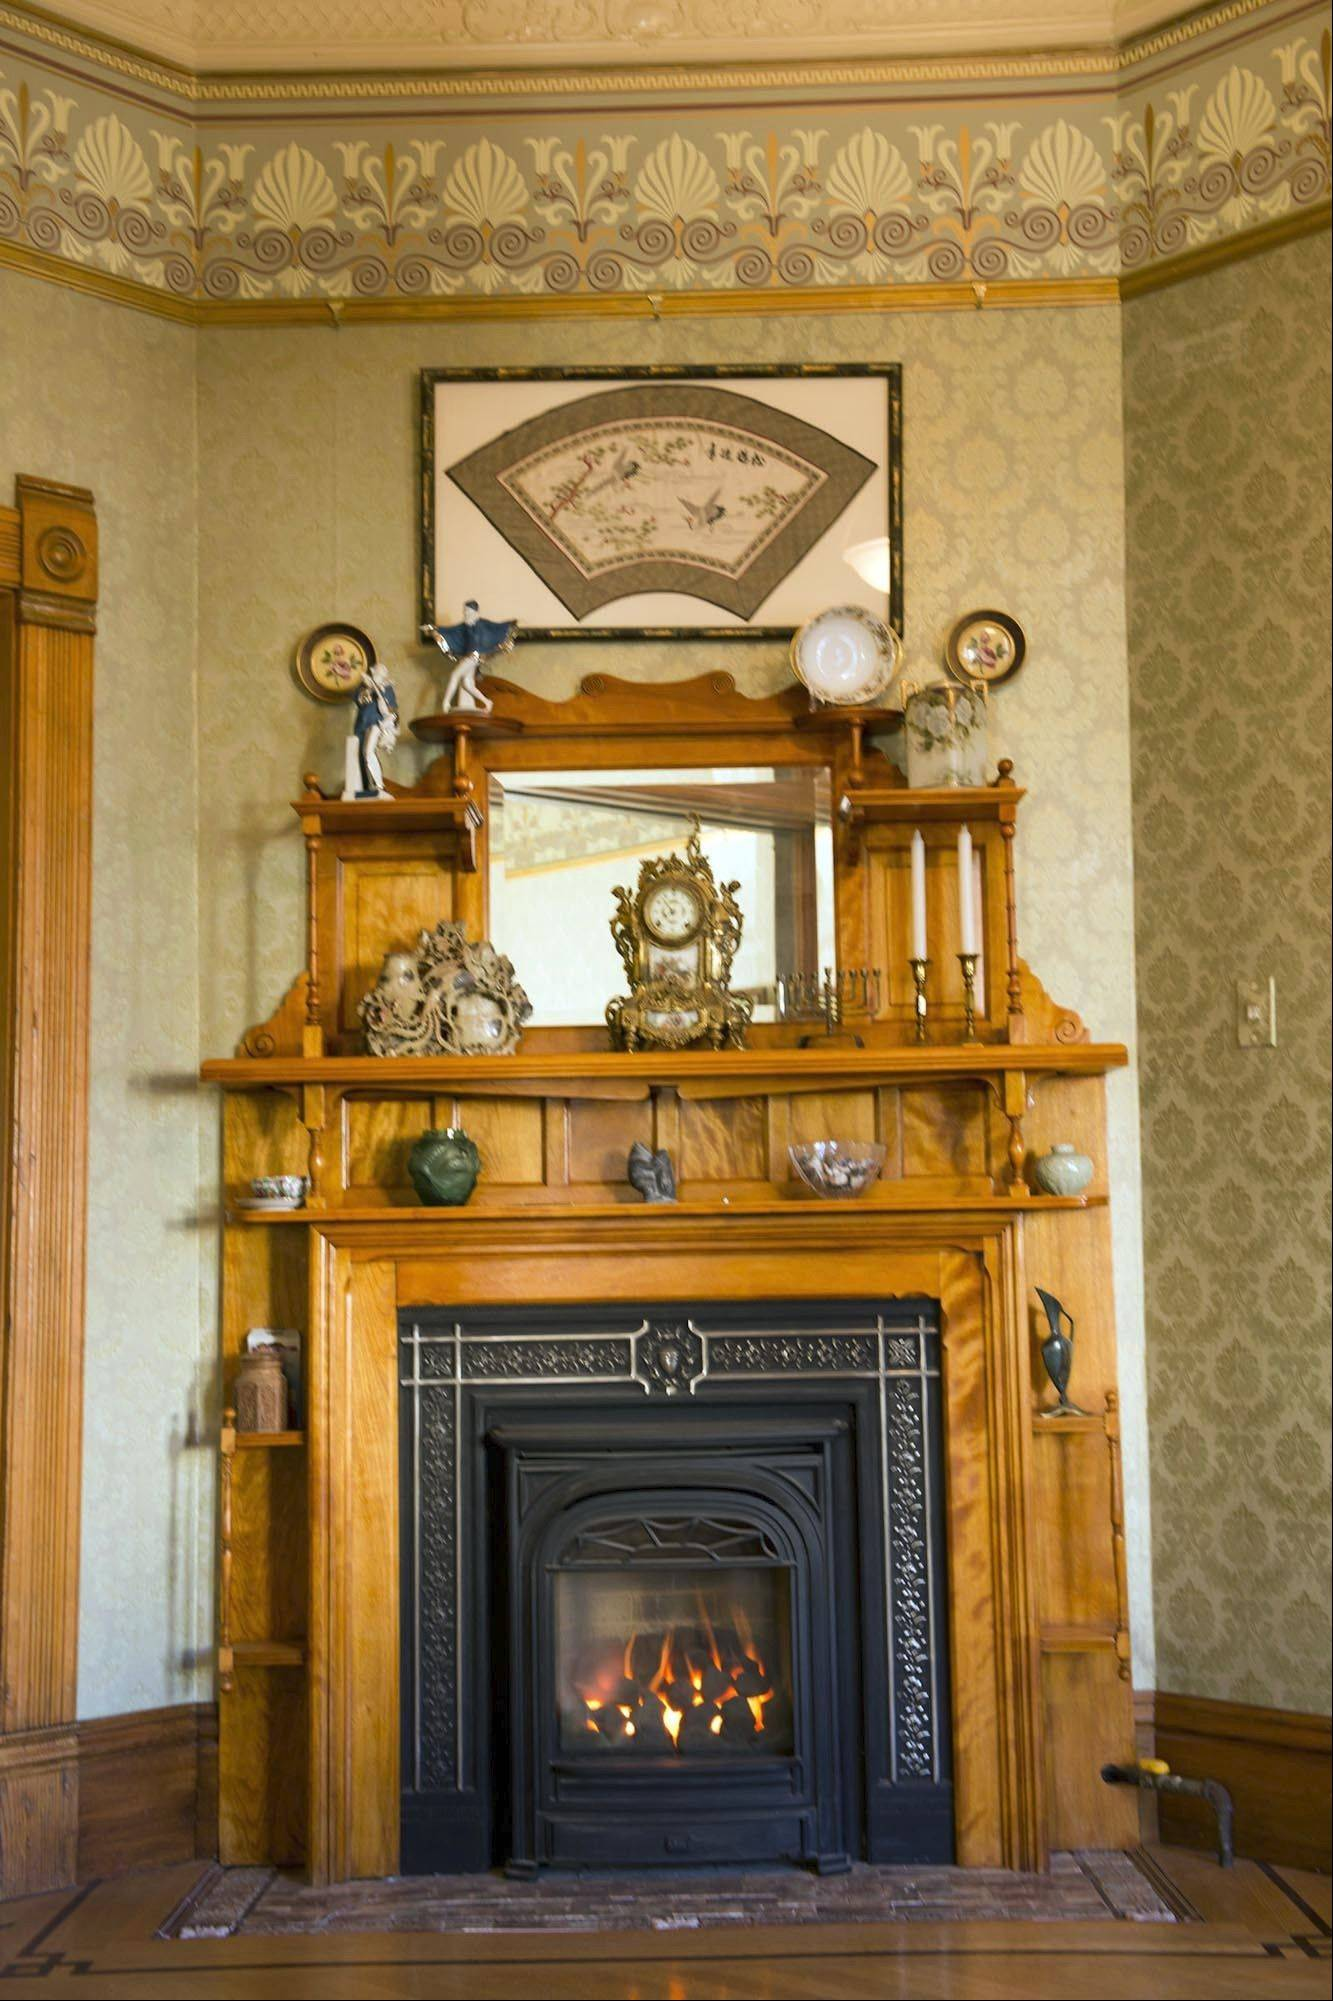 The original restored fireplace in the second parlor of Mehler's home.